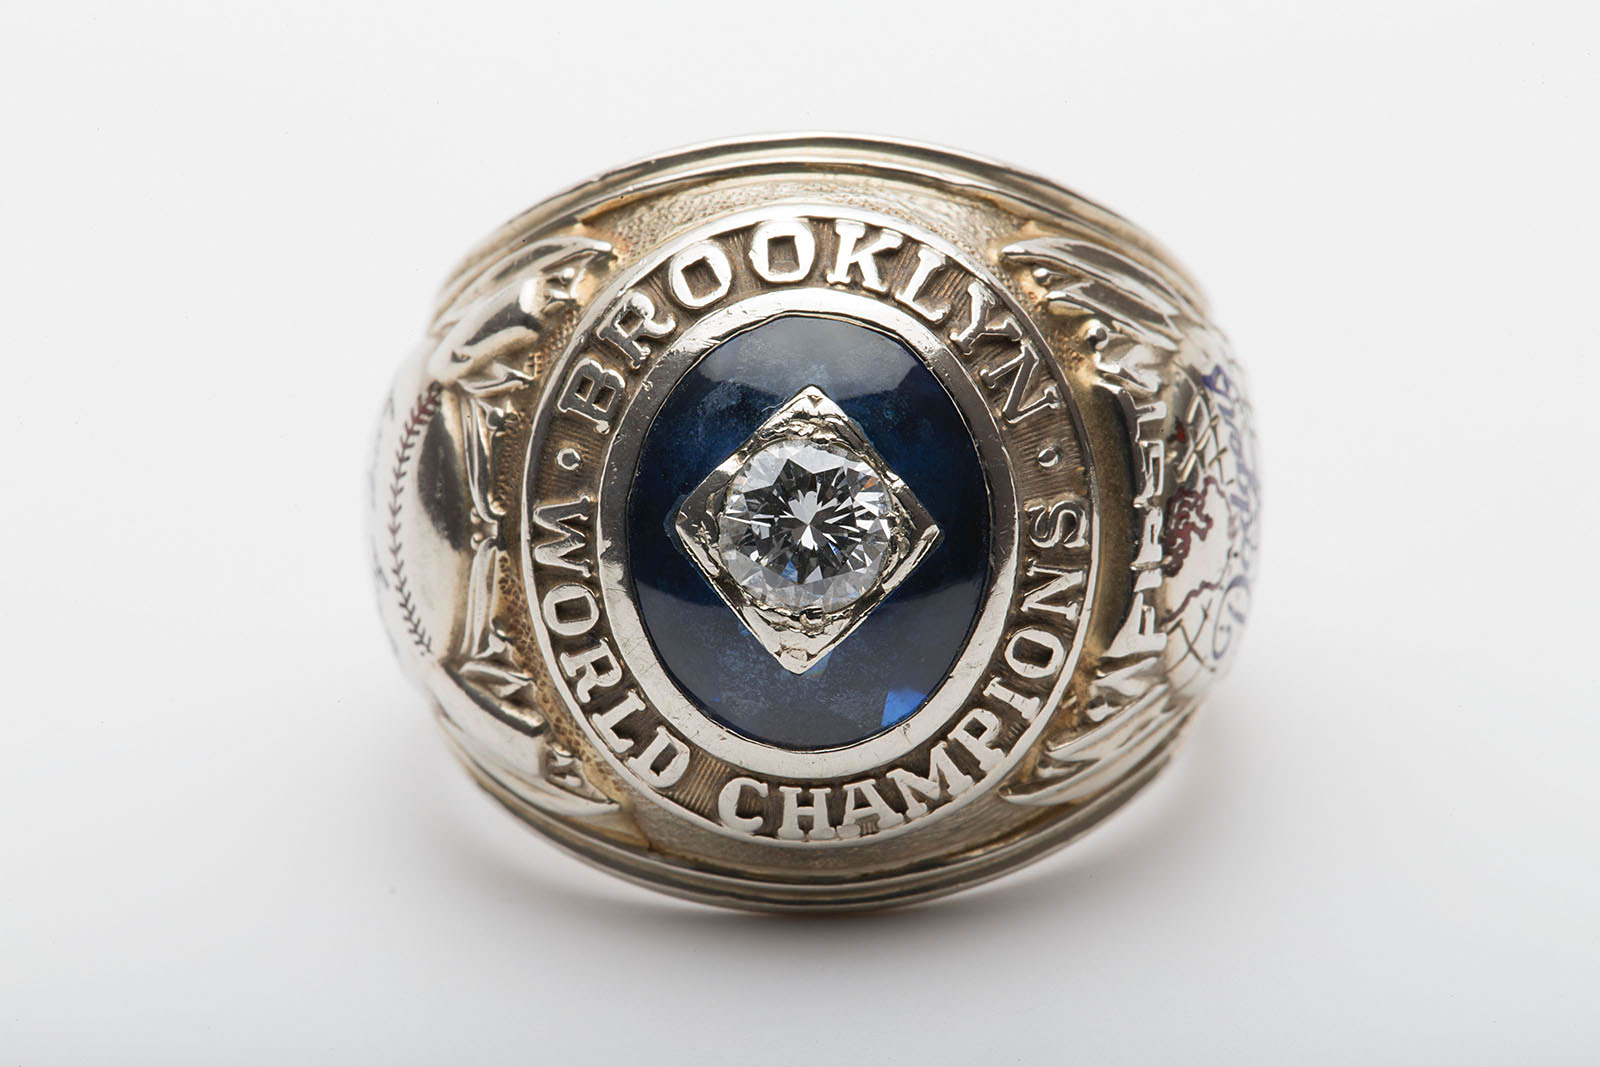 1955 World Series ring for sale Brooklyn Dodgers RR Auction